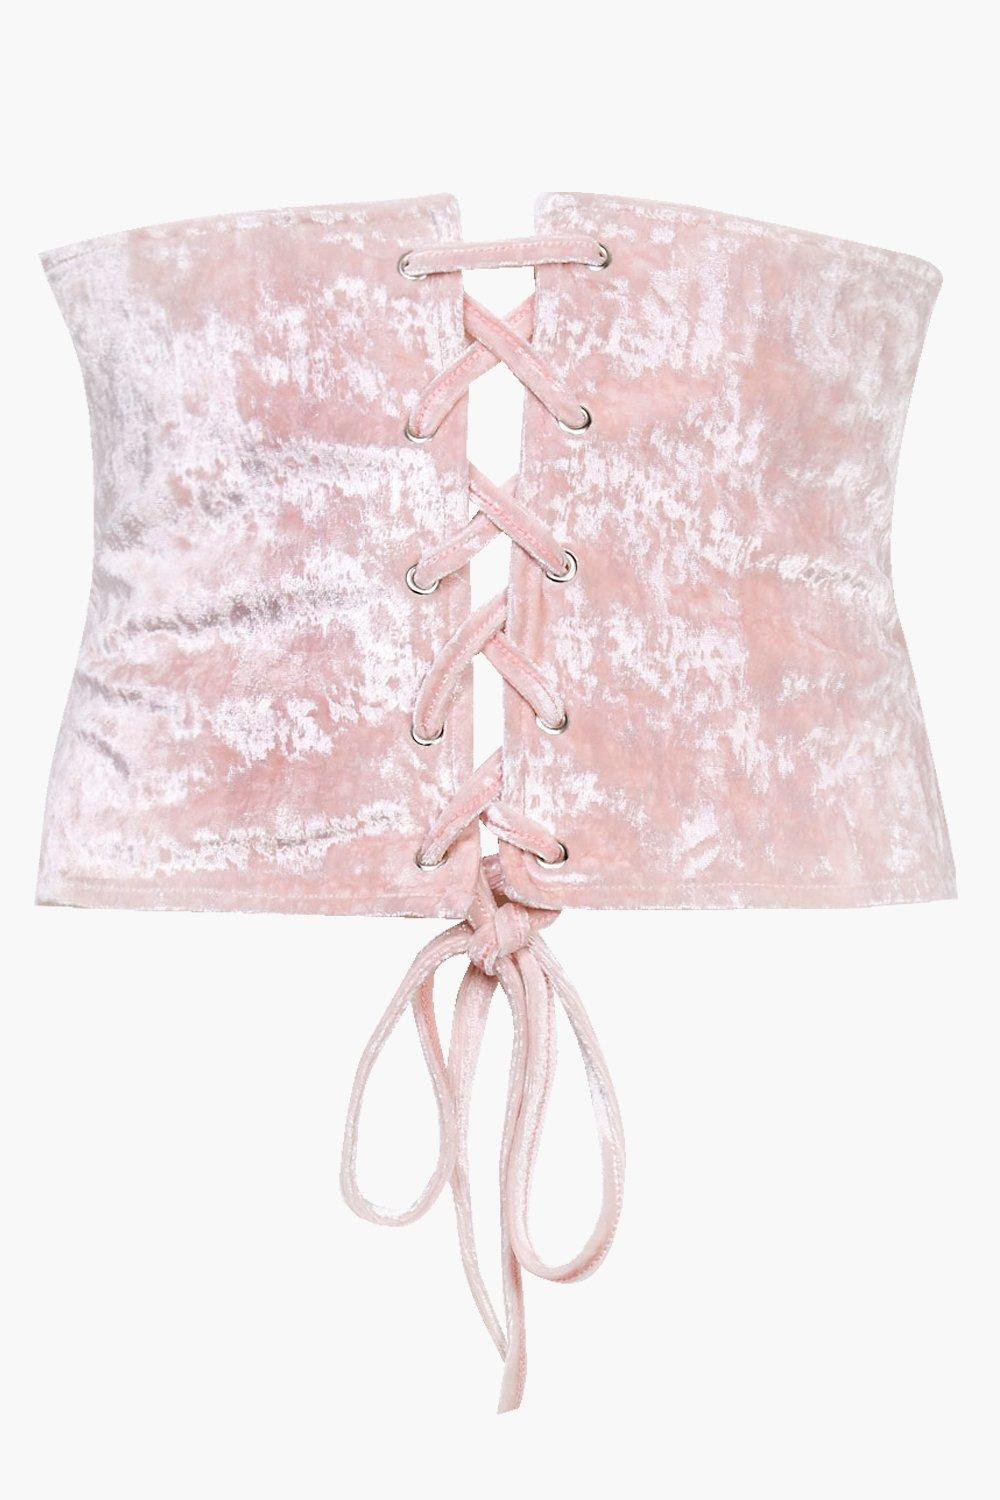 Leanne Velvet Lace Up Corset - nude - Plus Leanne